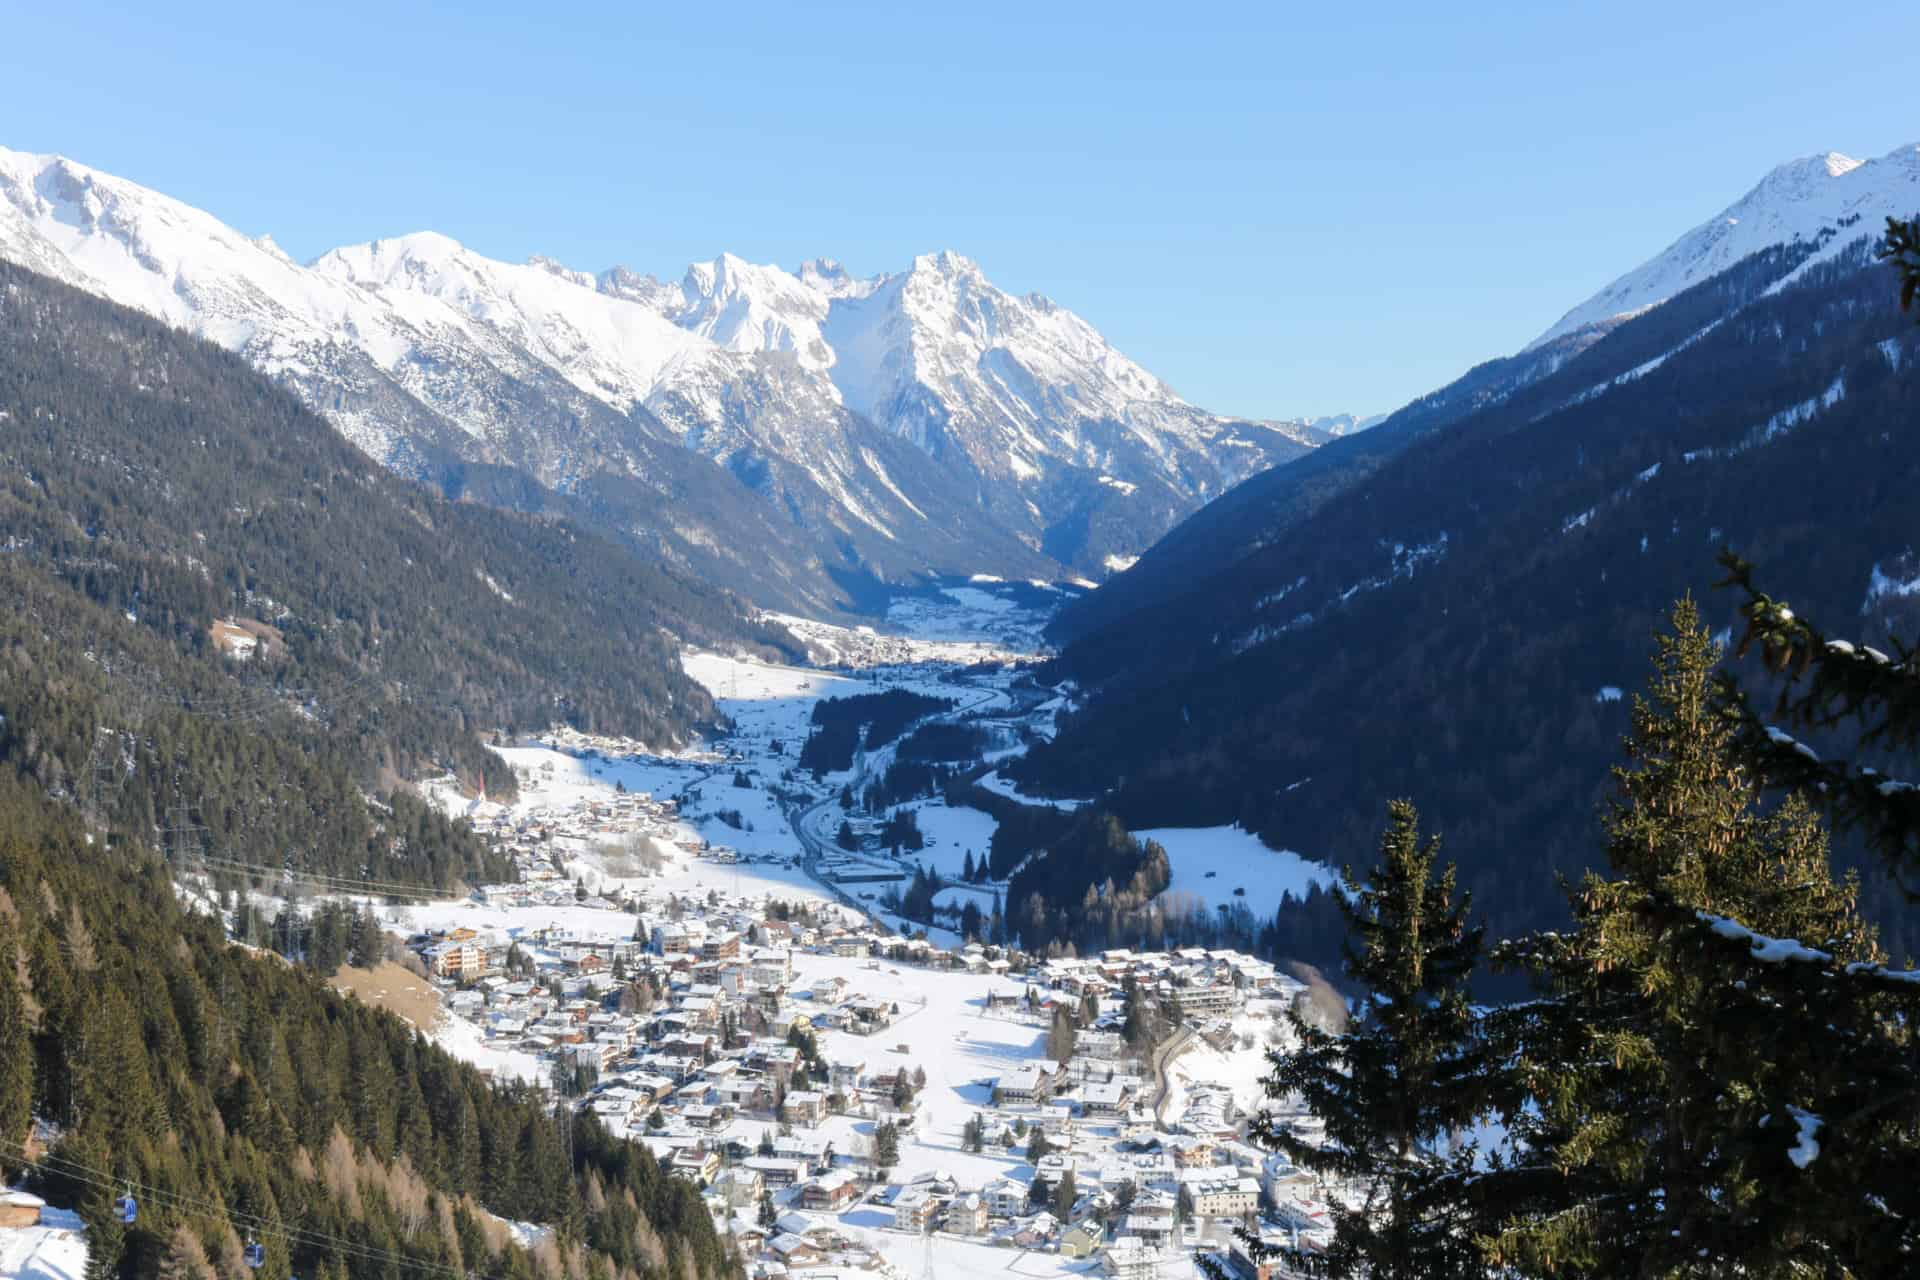 St Anton view from above